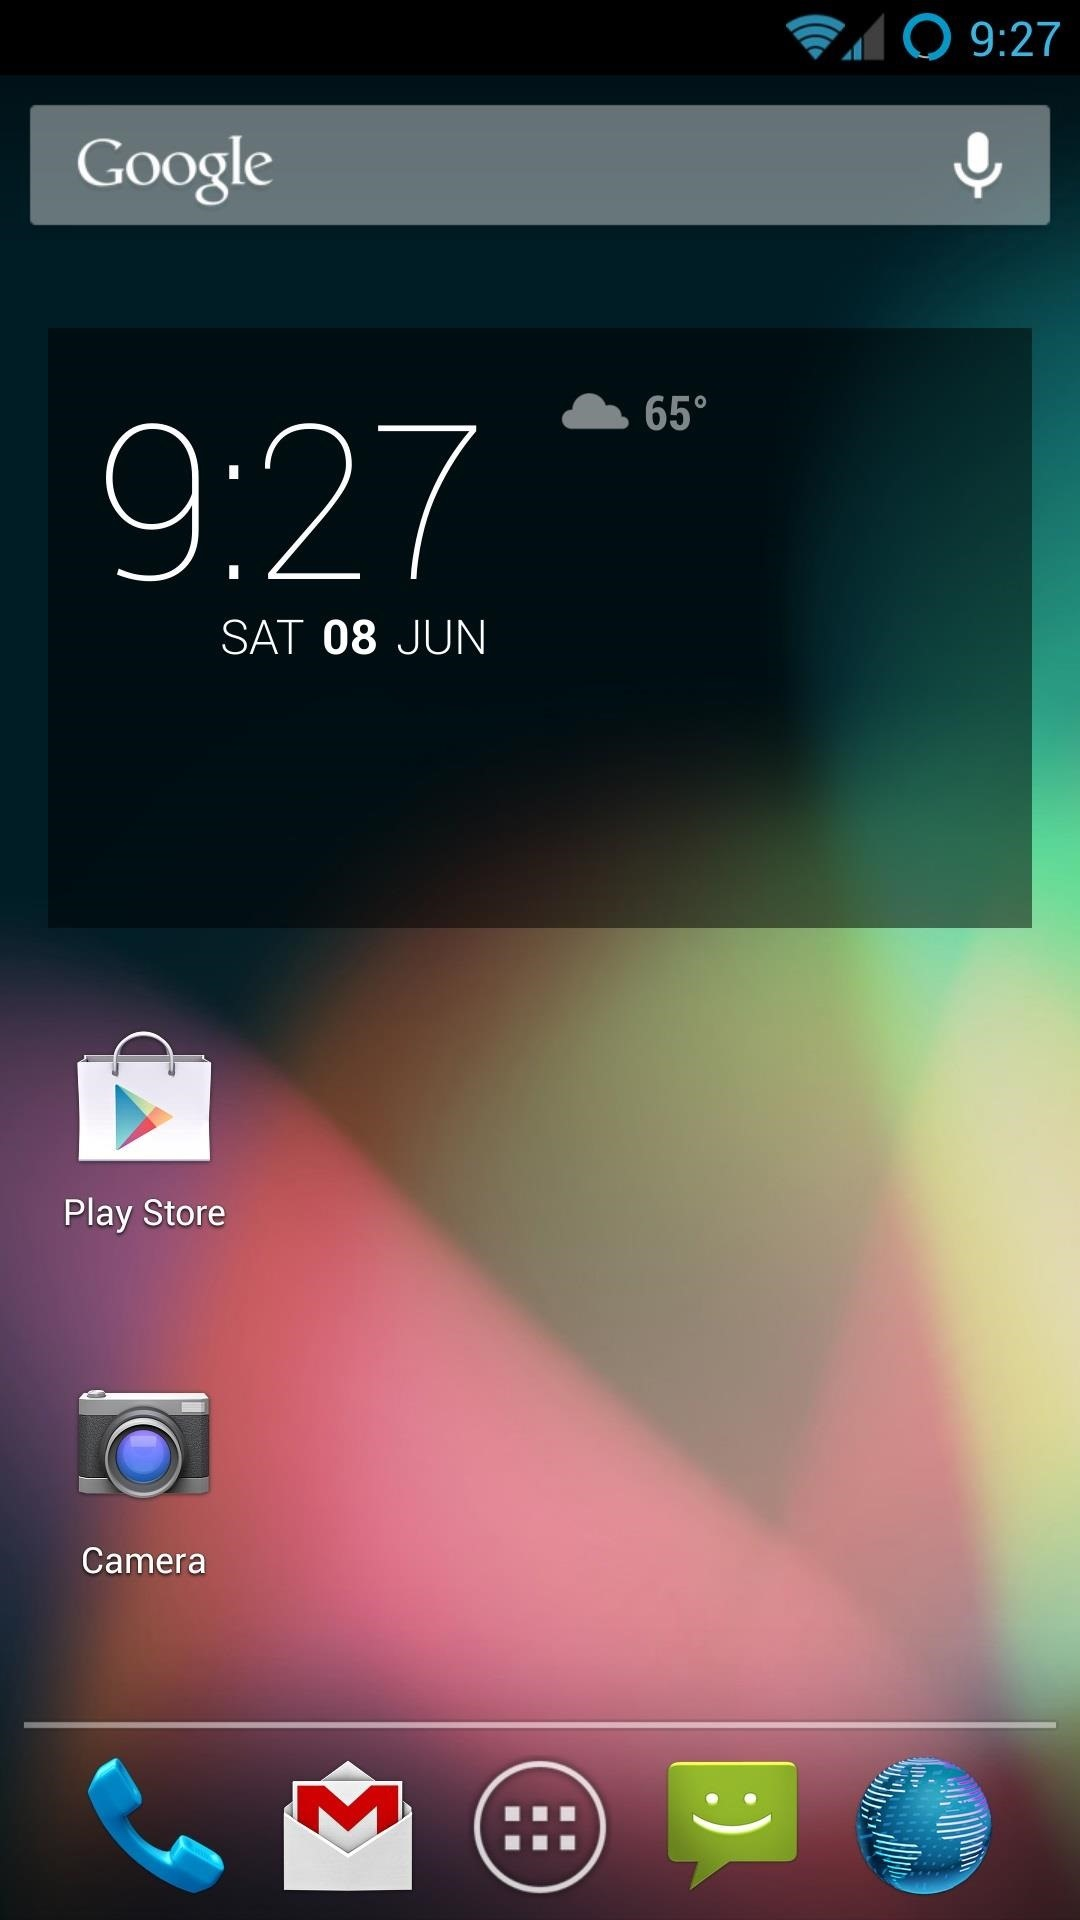 How to Convert Your HTC One into a Google Edition HTC One for an Enhanced Nexus Experience